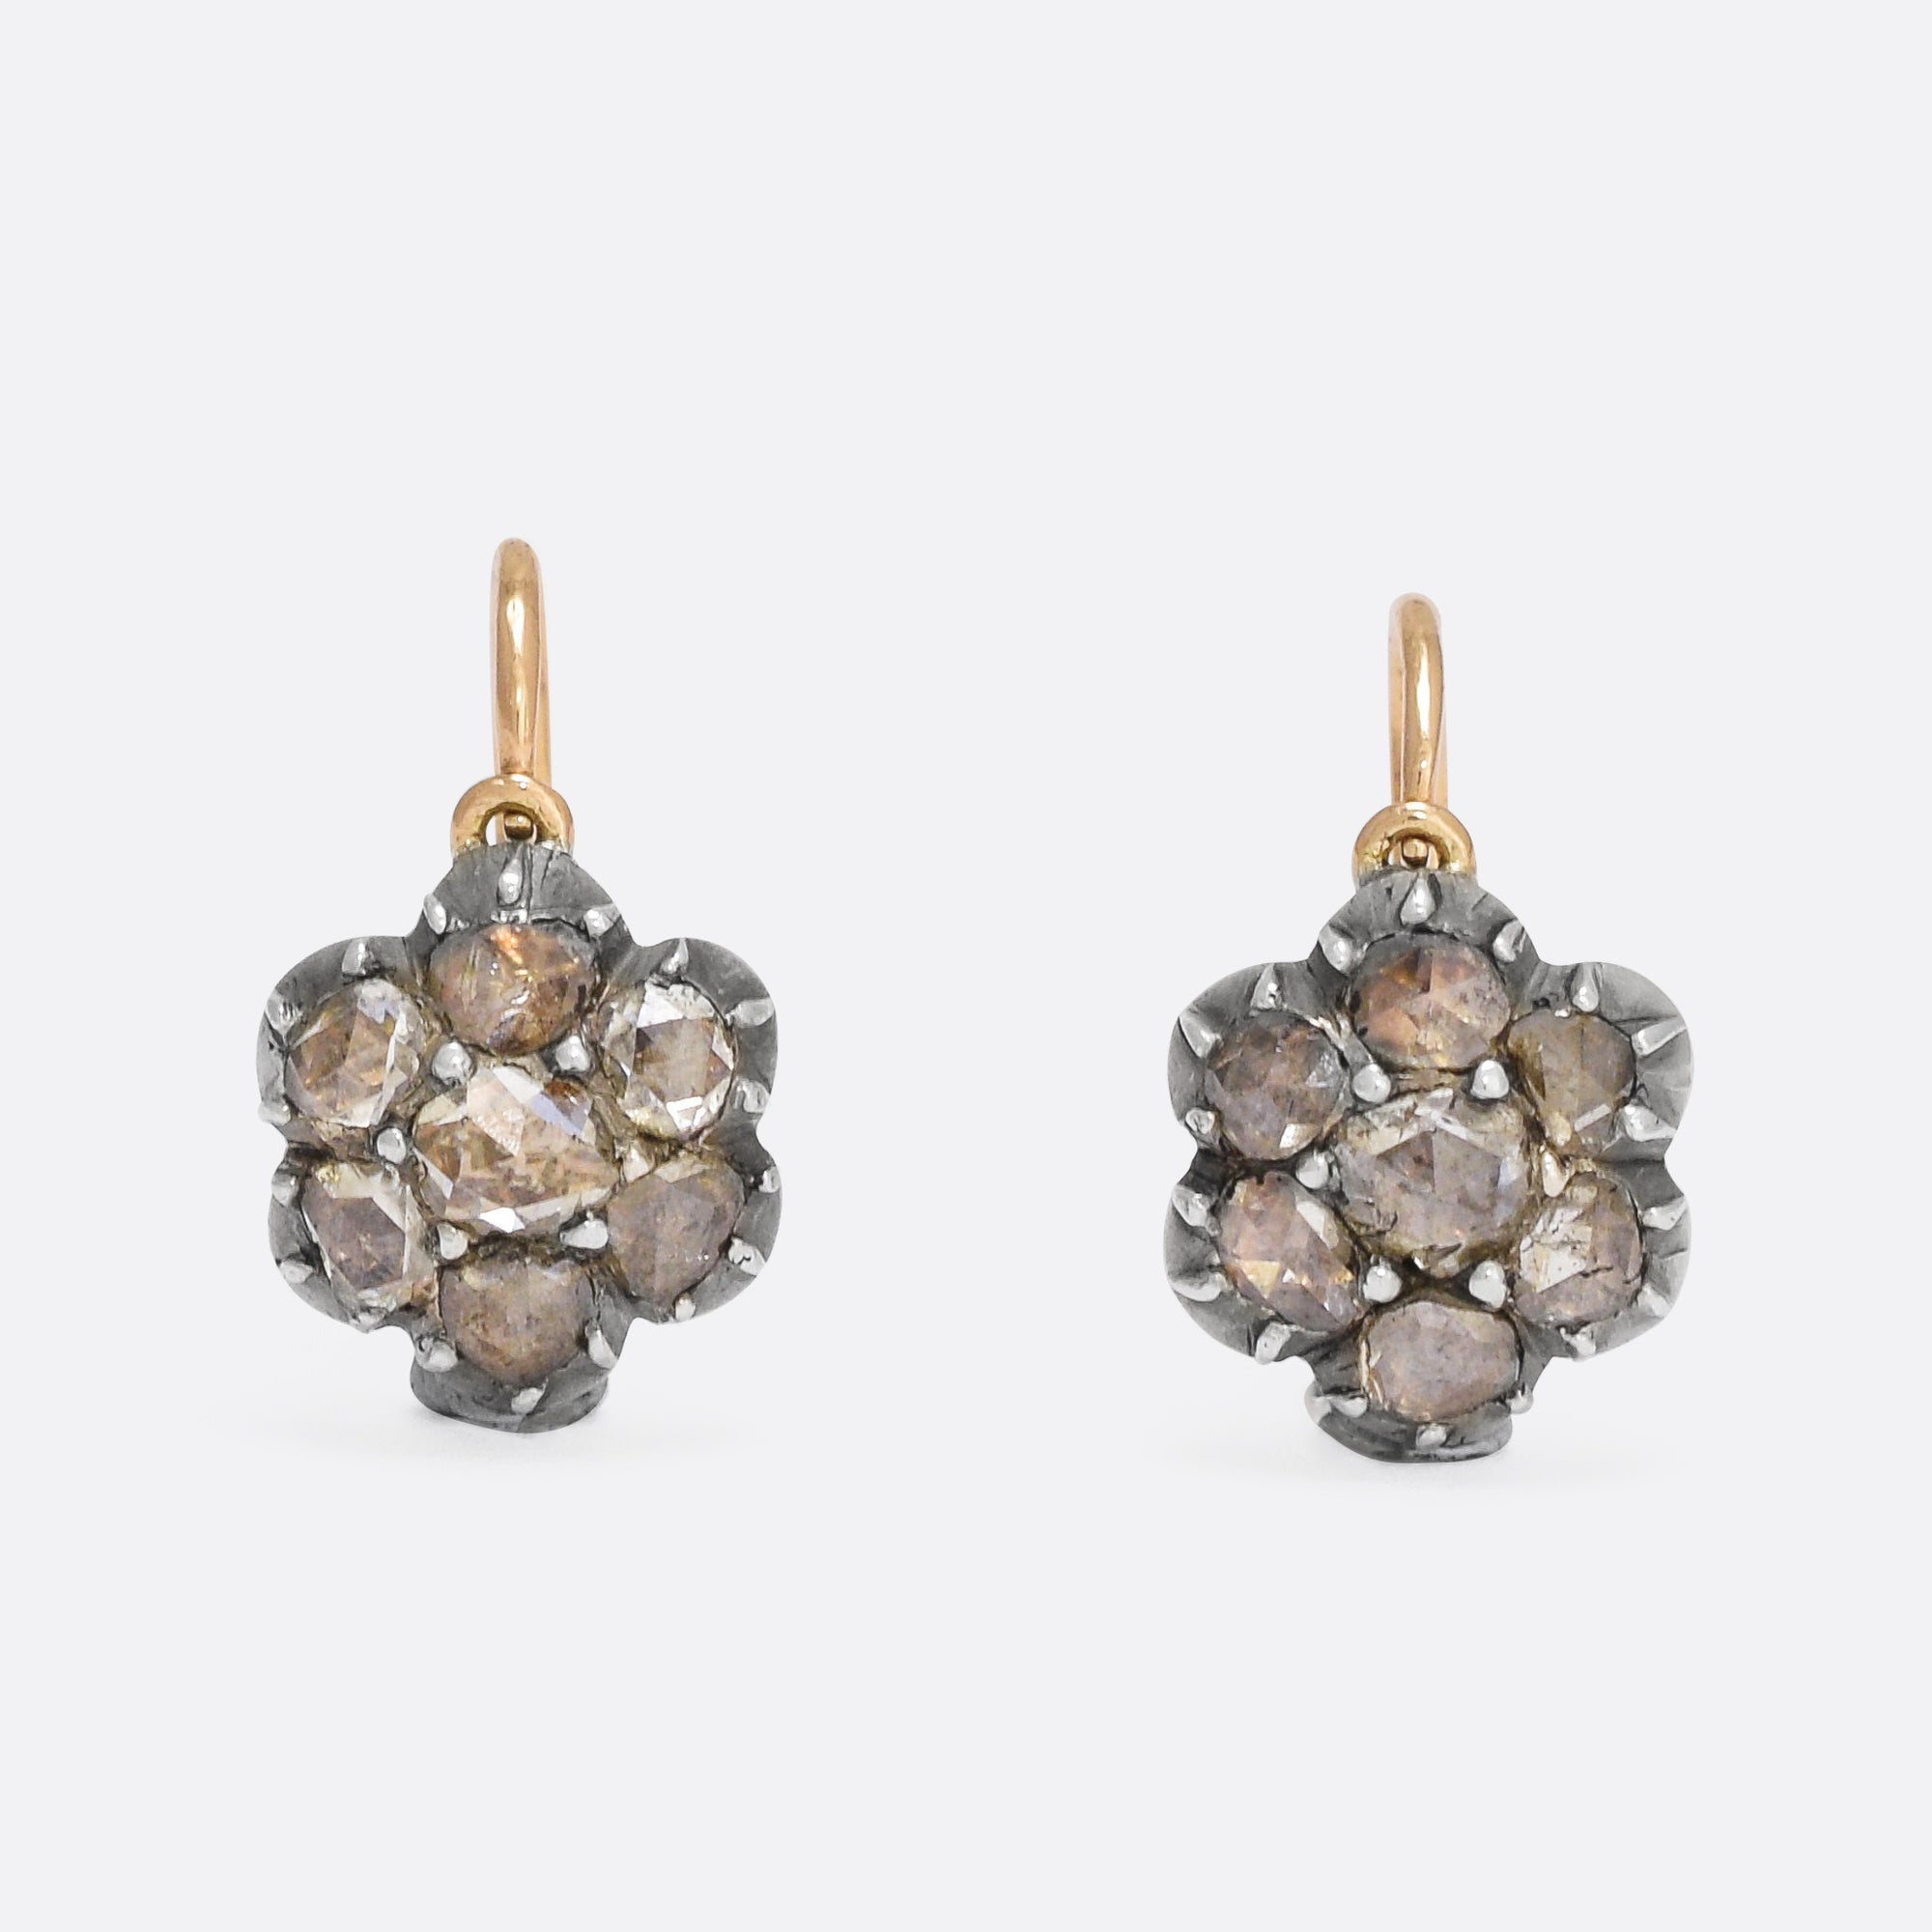 mit earrings ct diamond from diamant diamonds gold our itm brill antike ohrringe old antique silver with shop around brilliant cut of